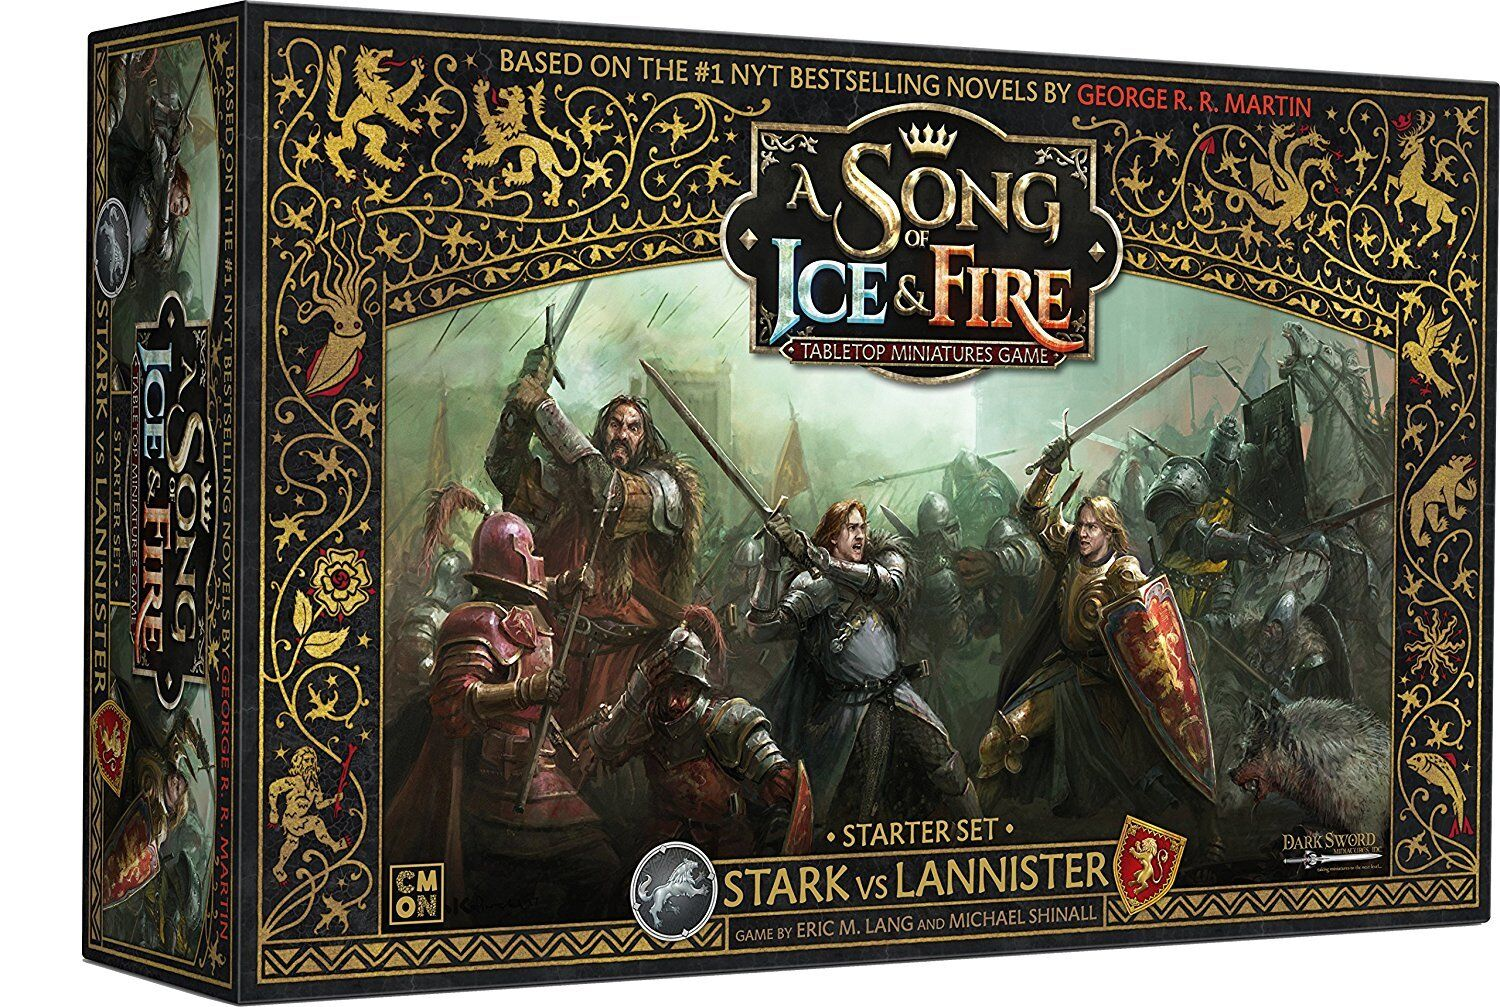 Cmon Stark vs Lannister Starter Set: A Song of Ice and Fire Core Box